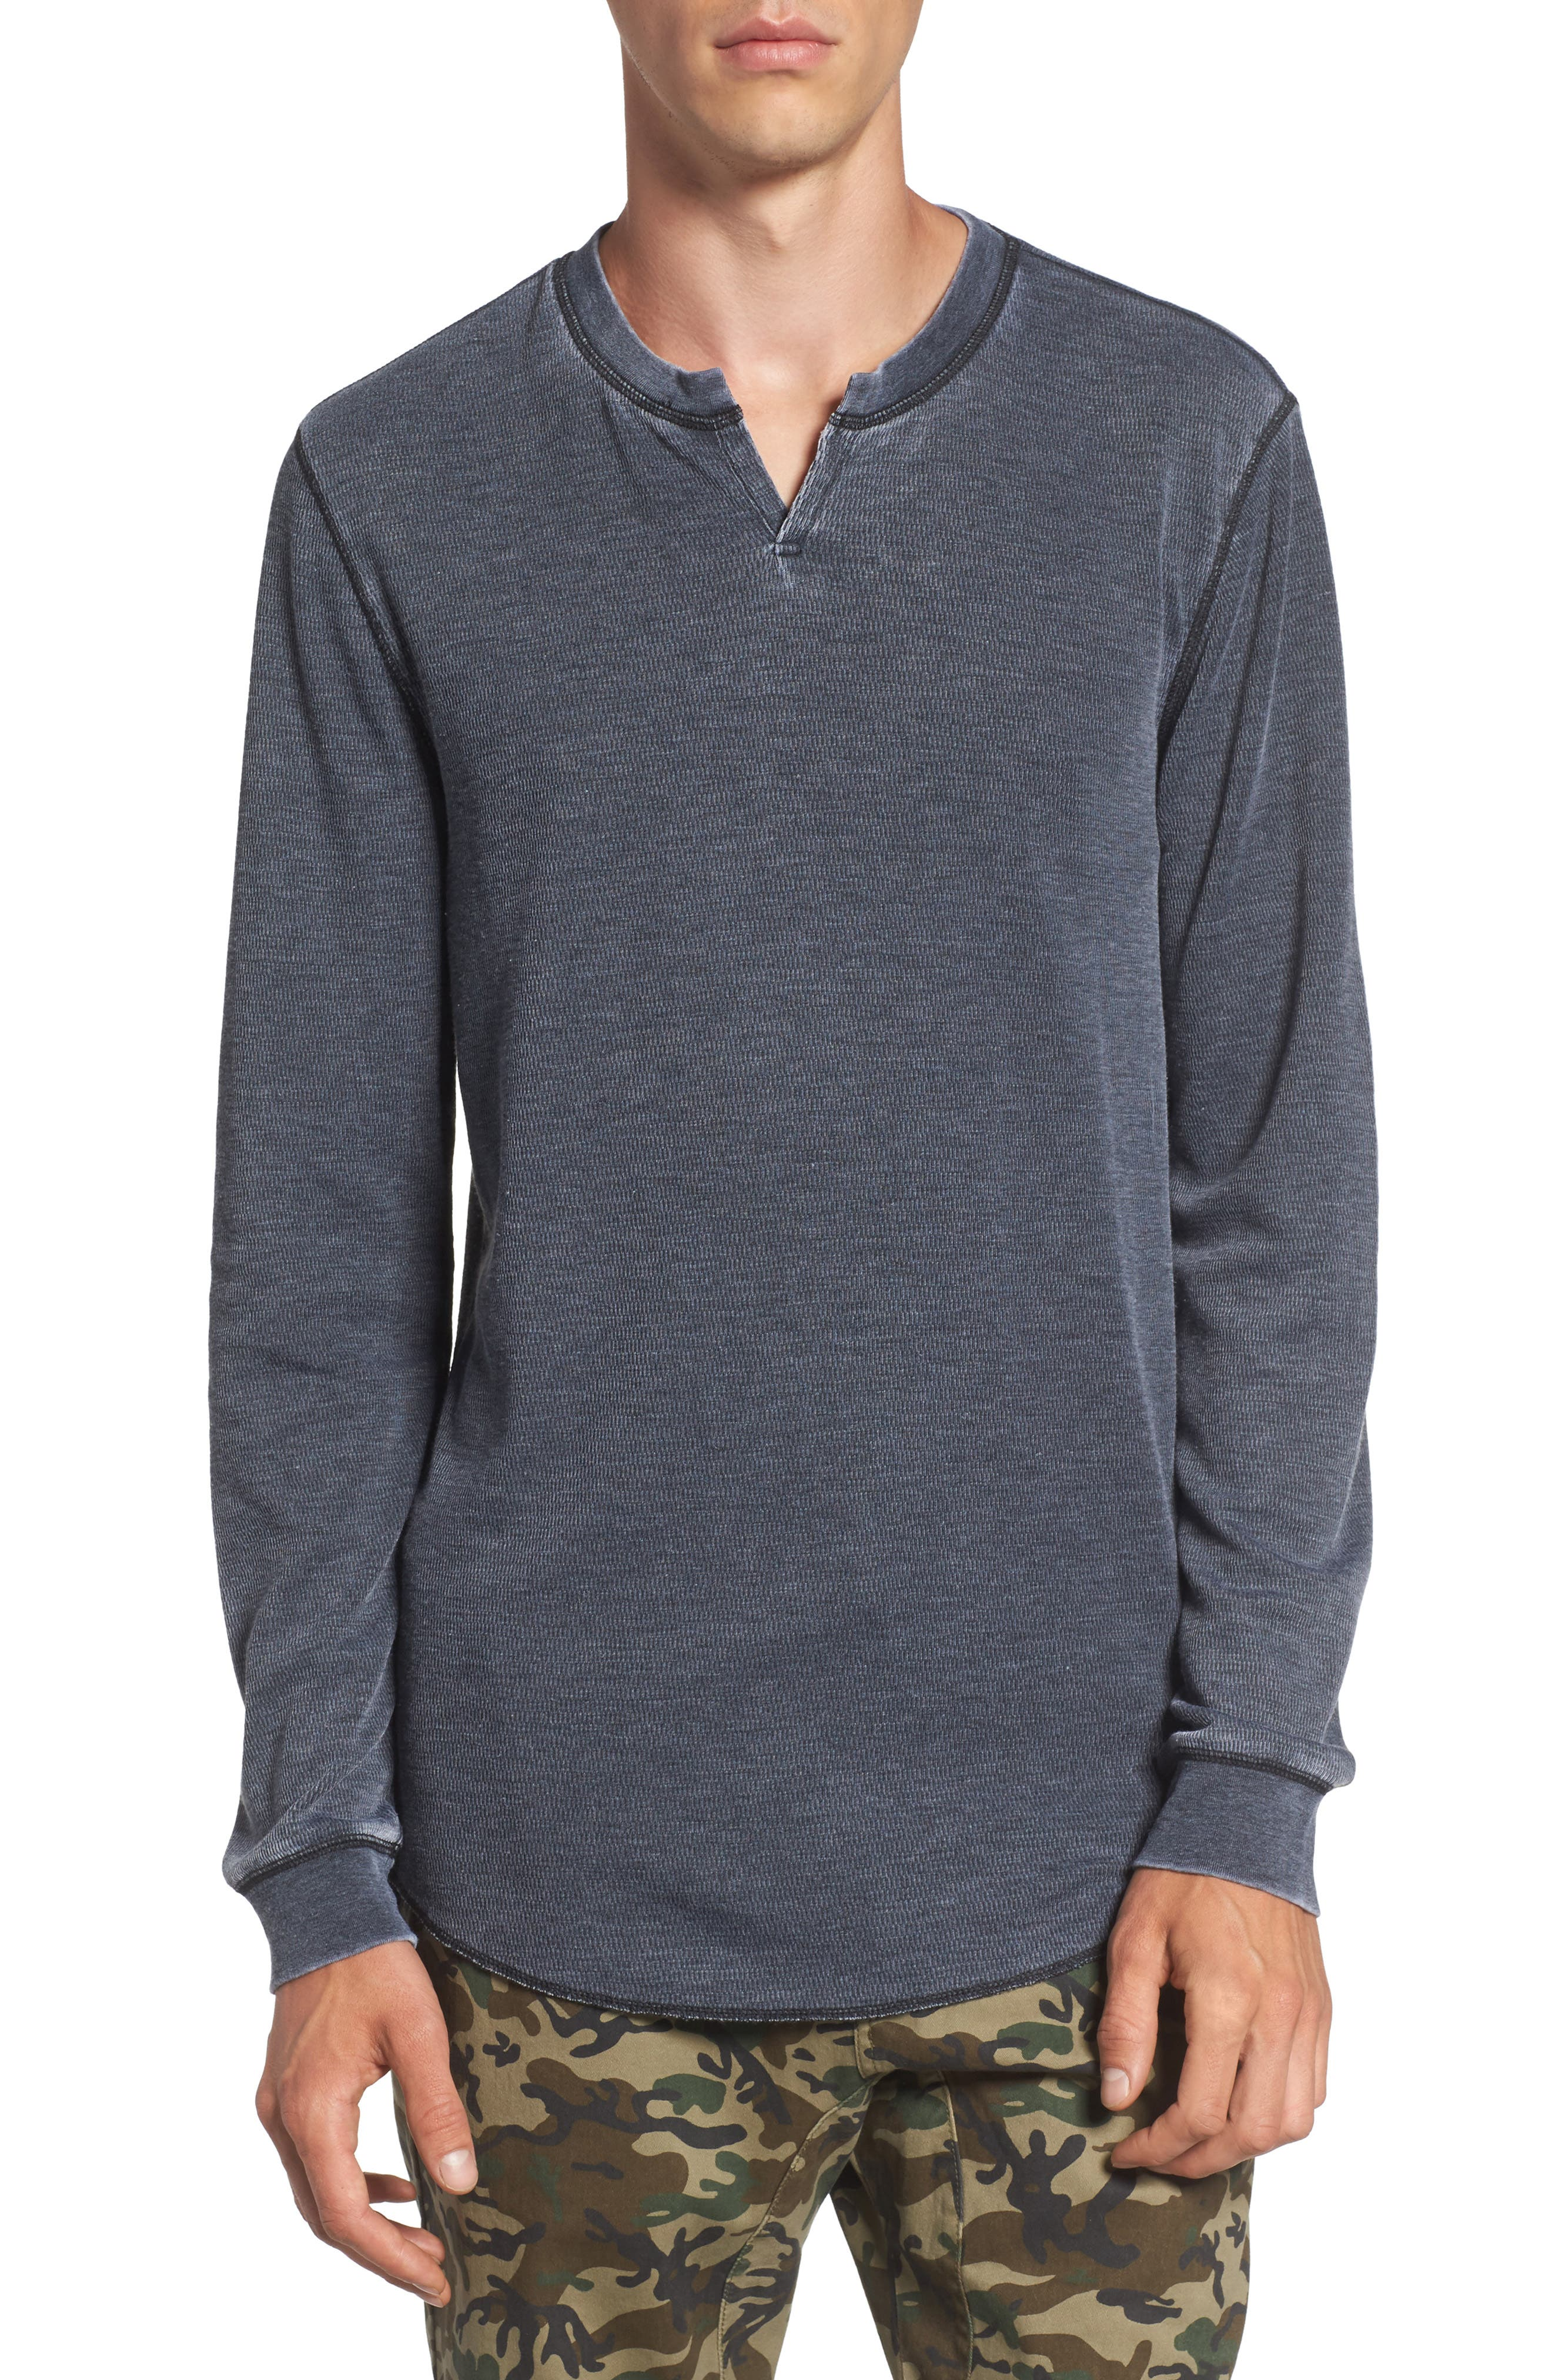 THE RAIL Notch Neck Thermal T-Shirt, Main, color, 001